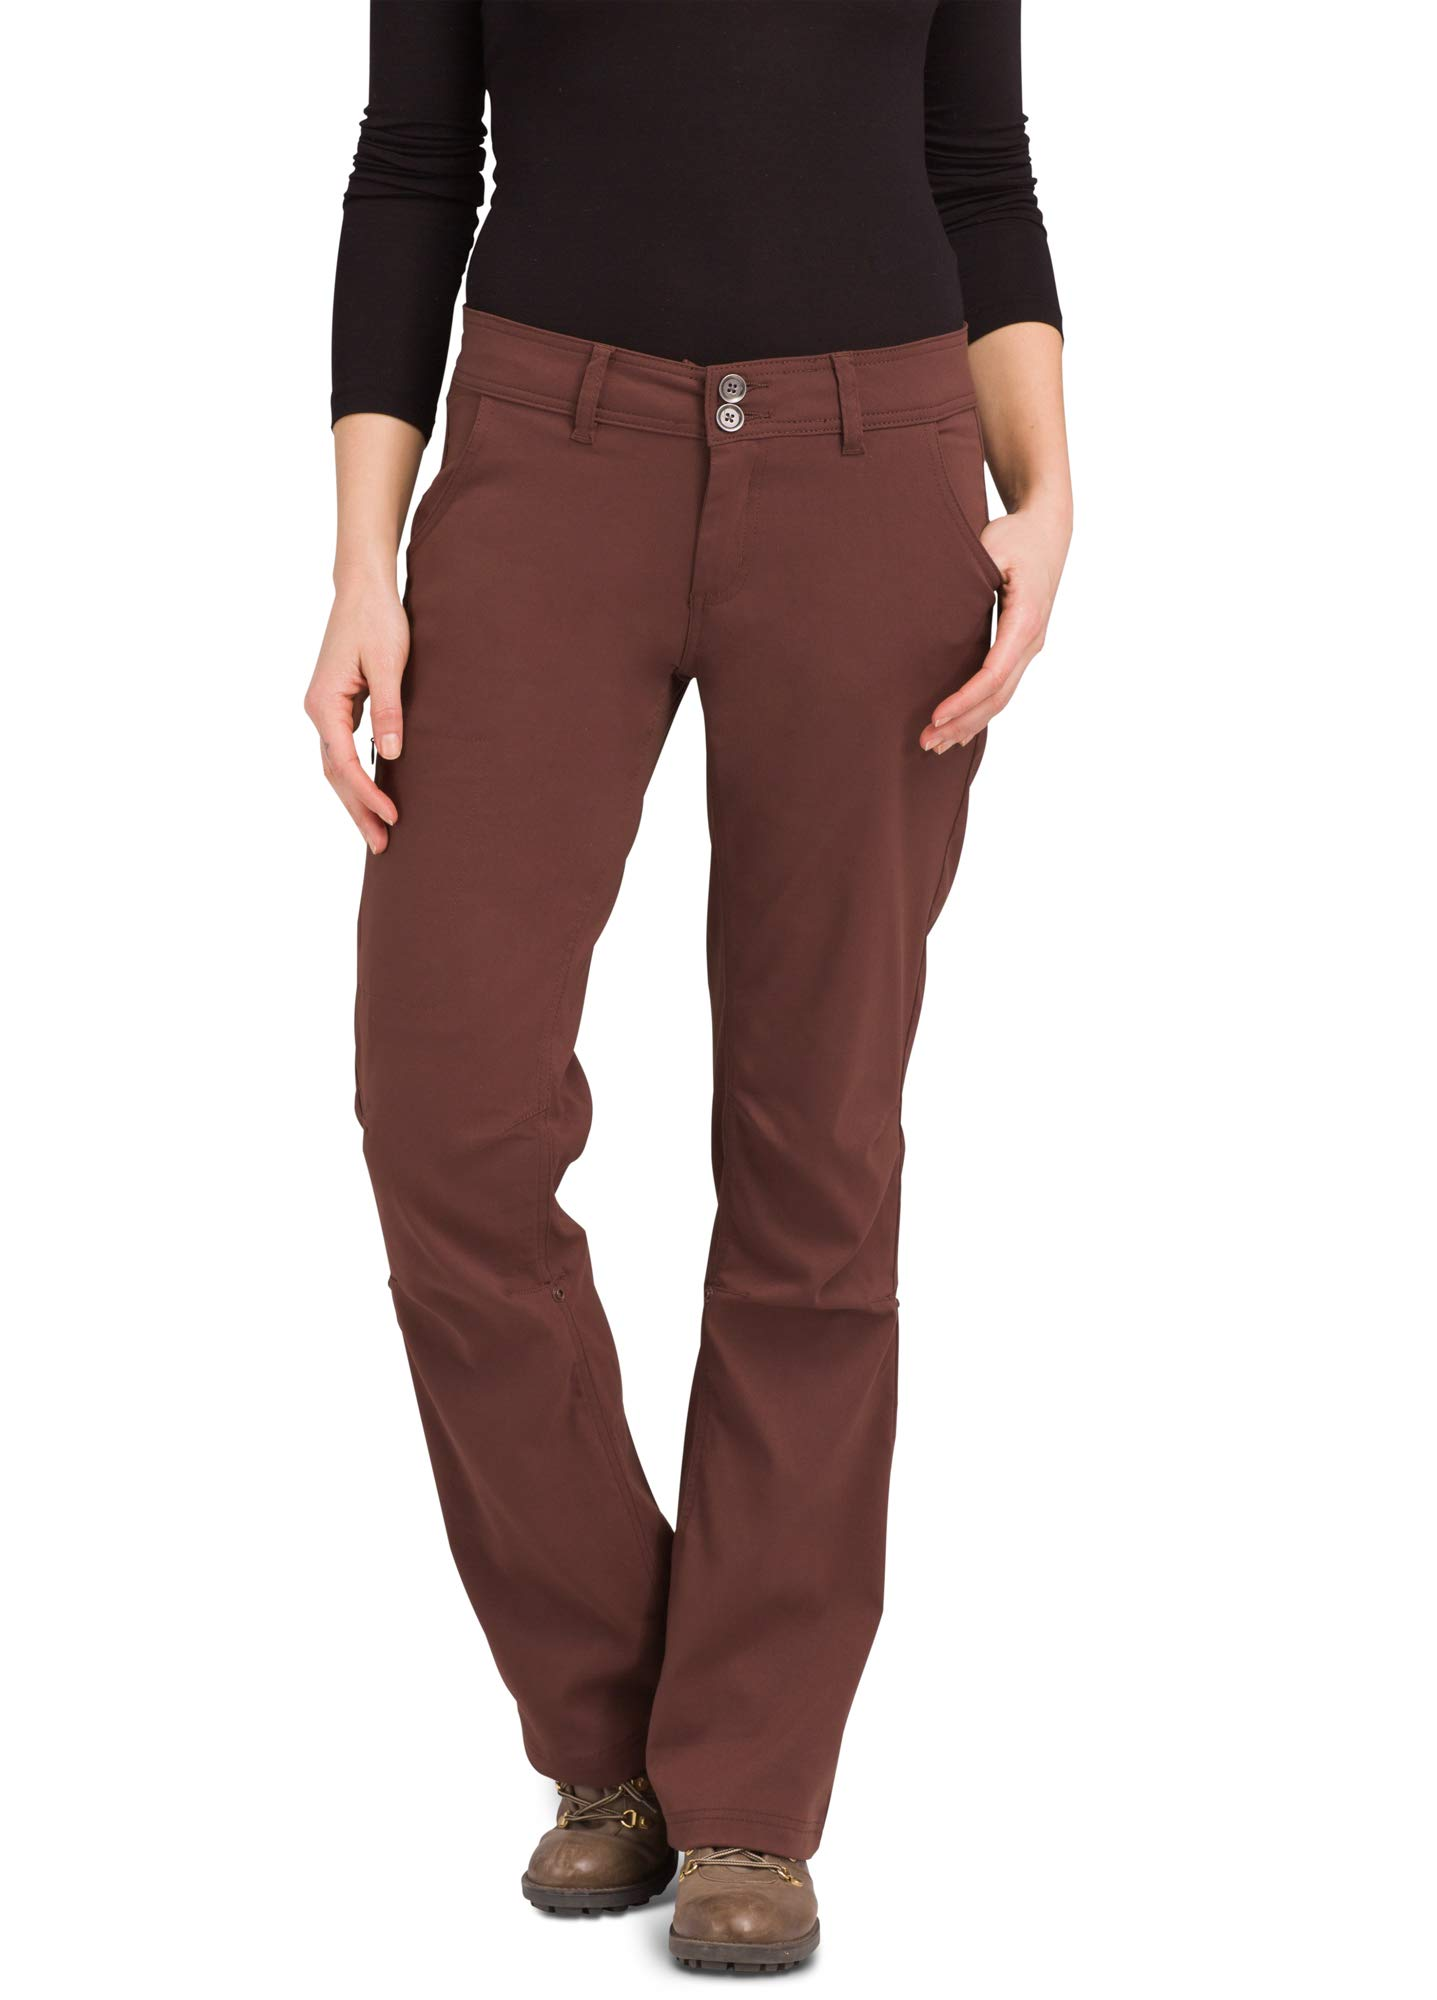 prAna - Women's Halle Roll-up, Water-Repellent Stretch Pants for Hiking and Everyday Wear, Tall Inseam, Cocoa, 6 by prAna